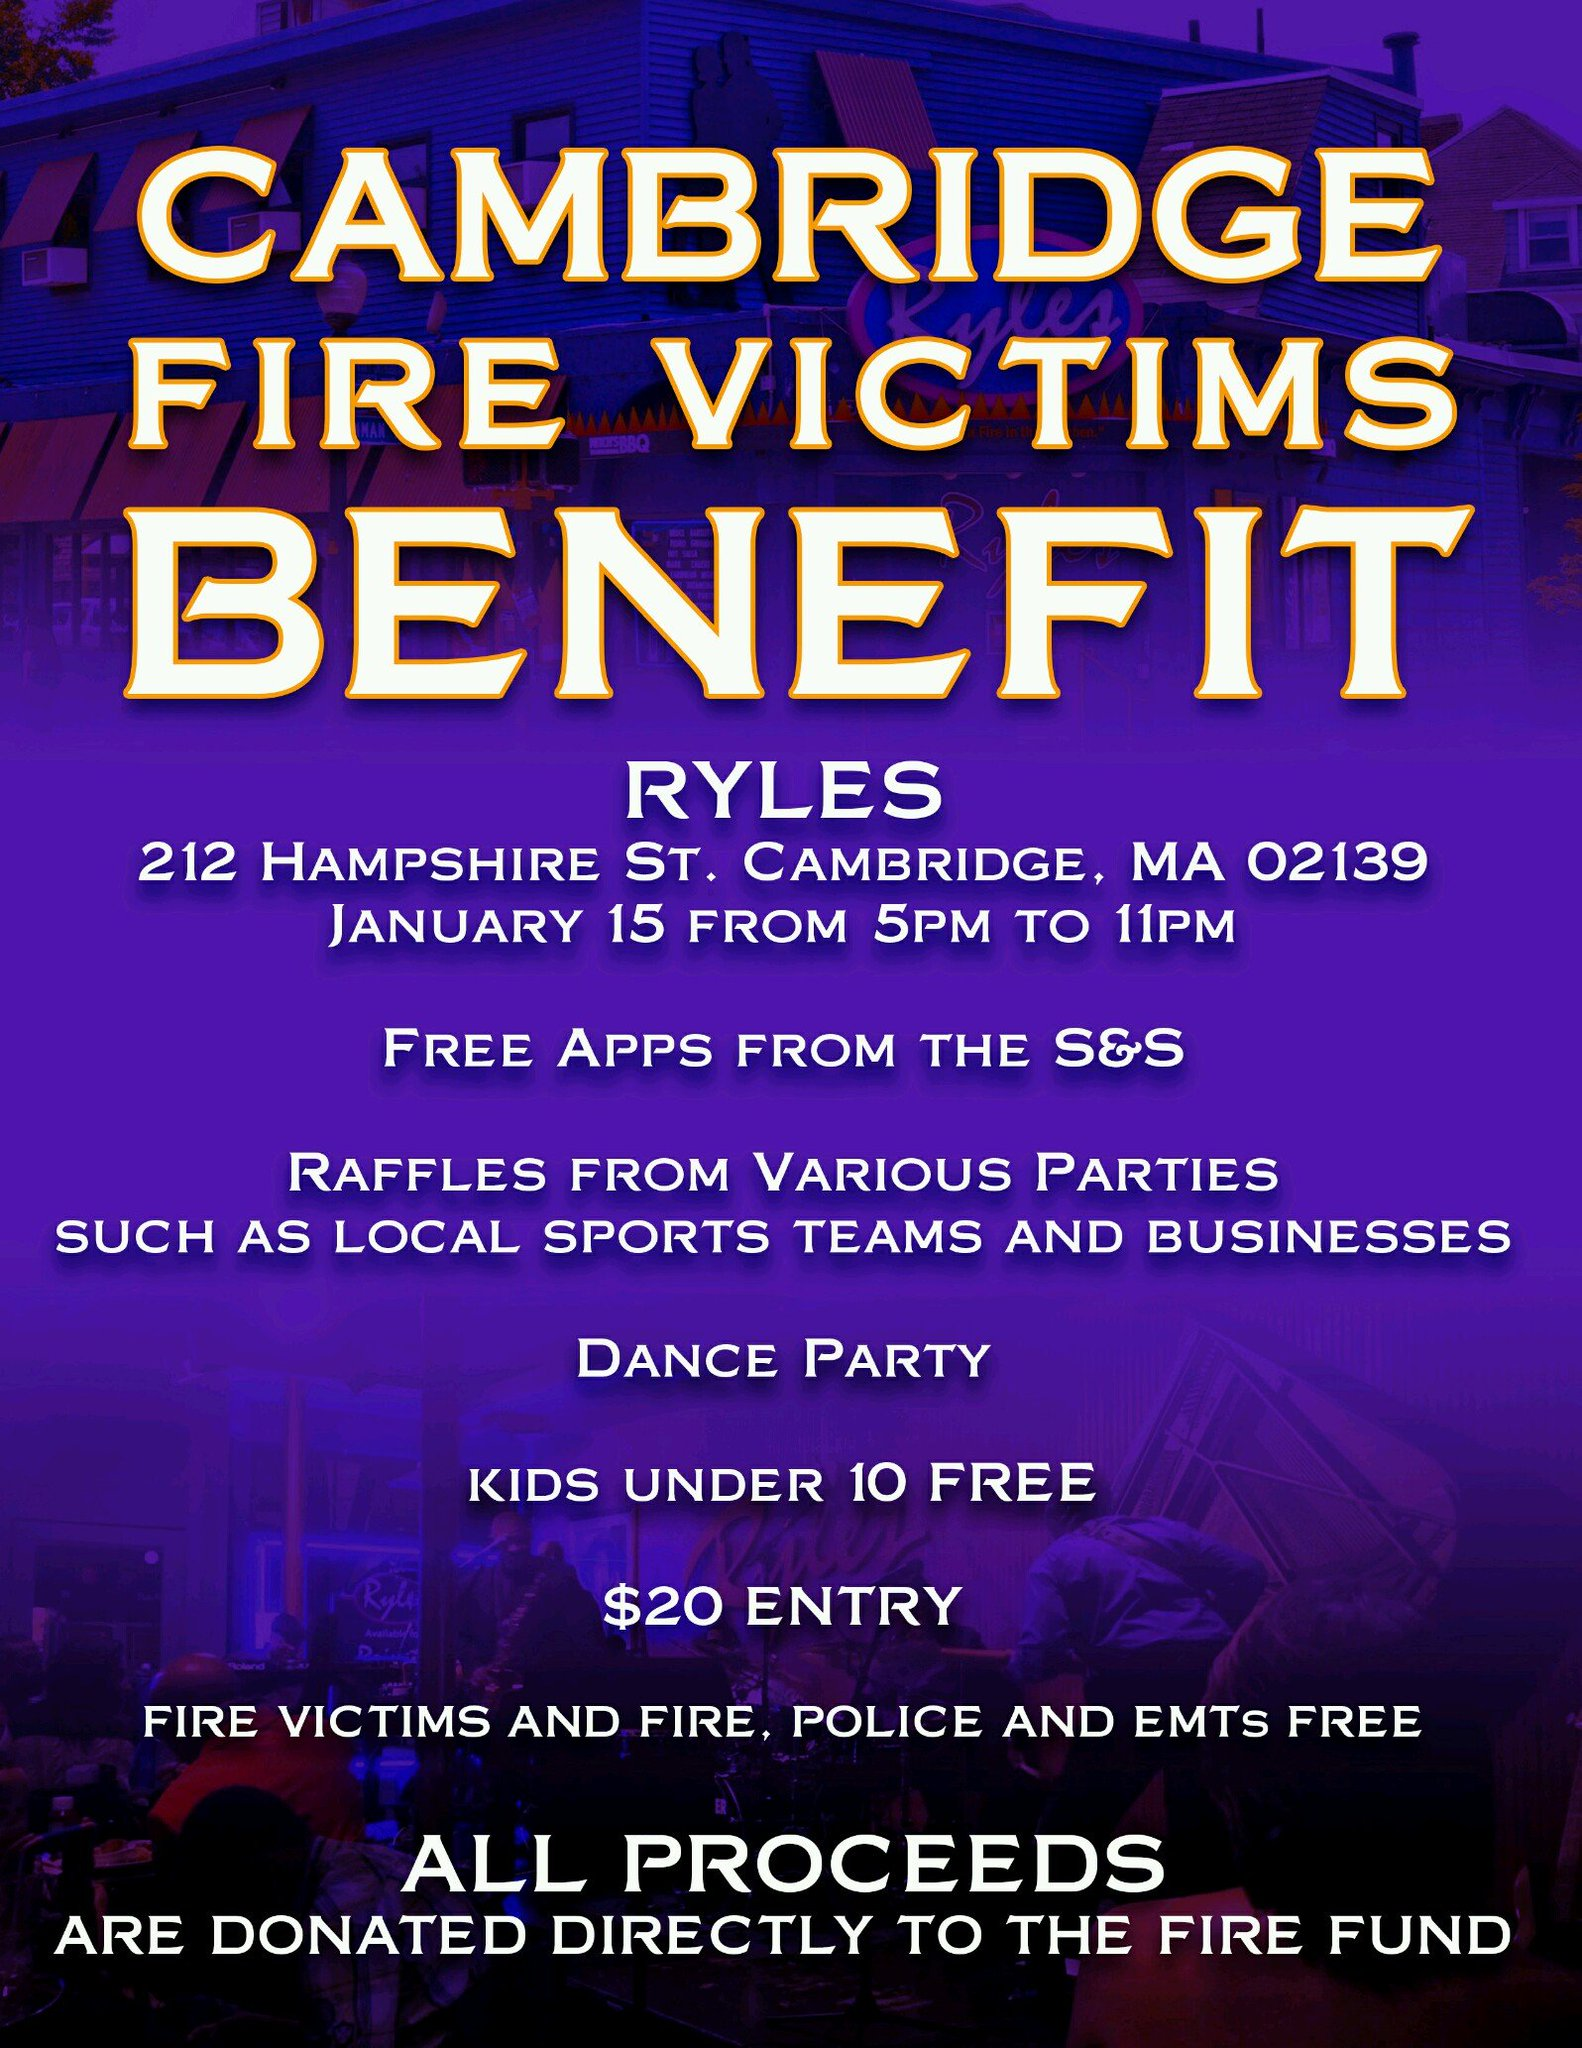 Cambridge Fire Victims Benefit Ryles 212 Hampshire Street Cambridge, MA 02139 Jan 15th 5-11pm